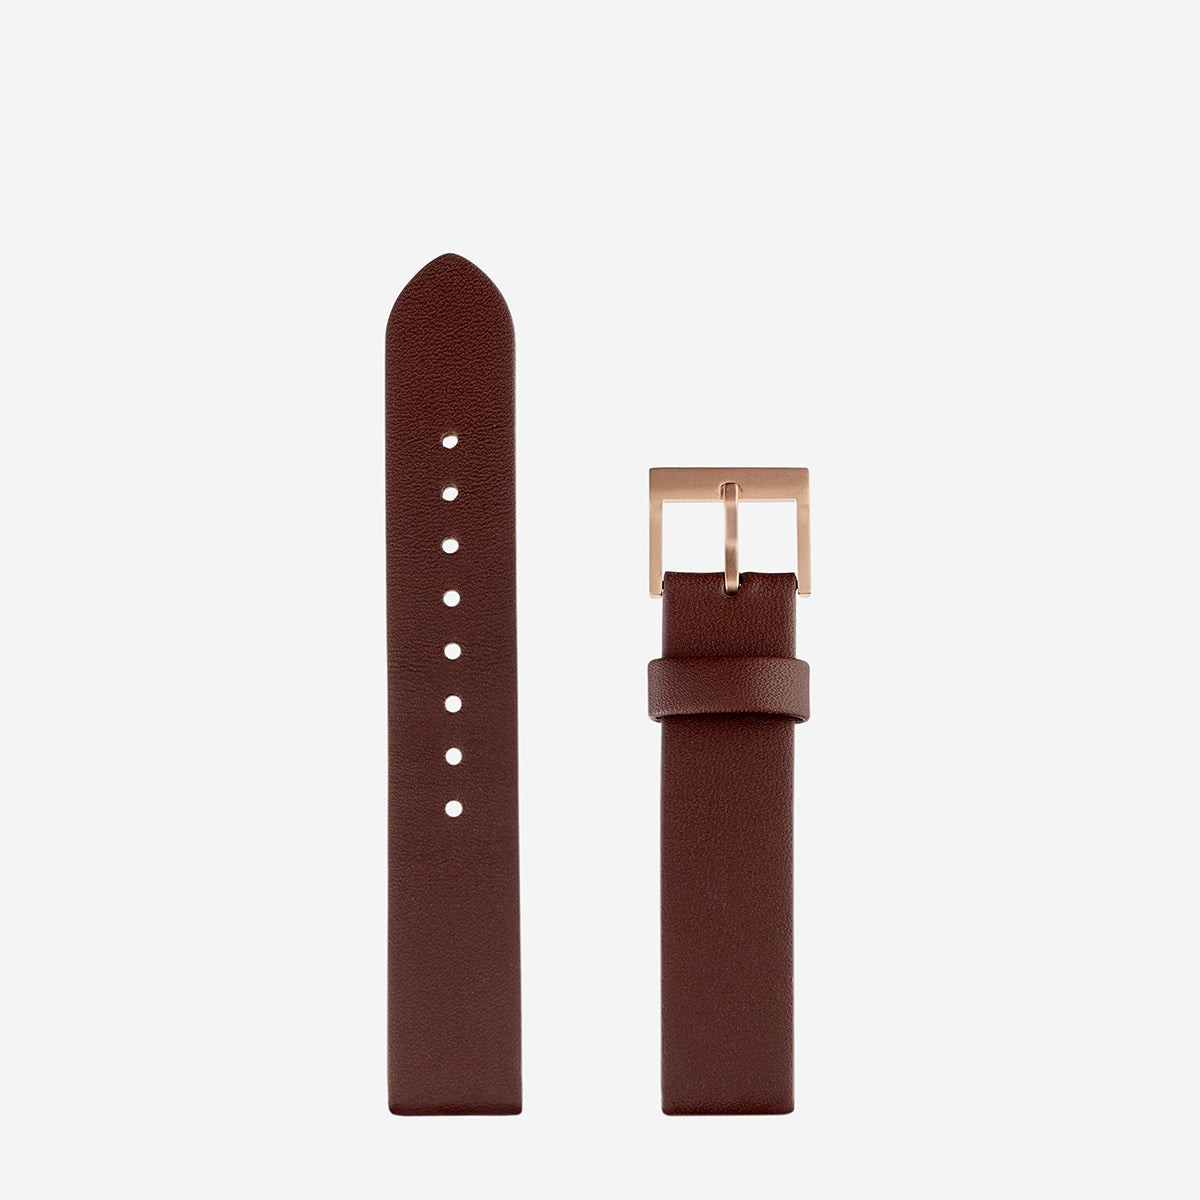 Status Anxiety Inertia Leather Unisex Watch Strap (Only)- Brown Strap/Brushed Copper Buckle